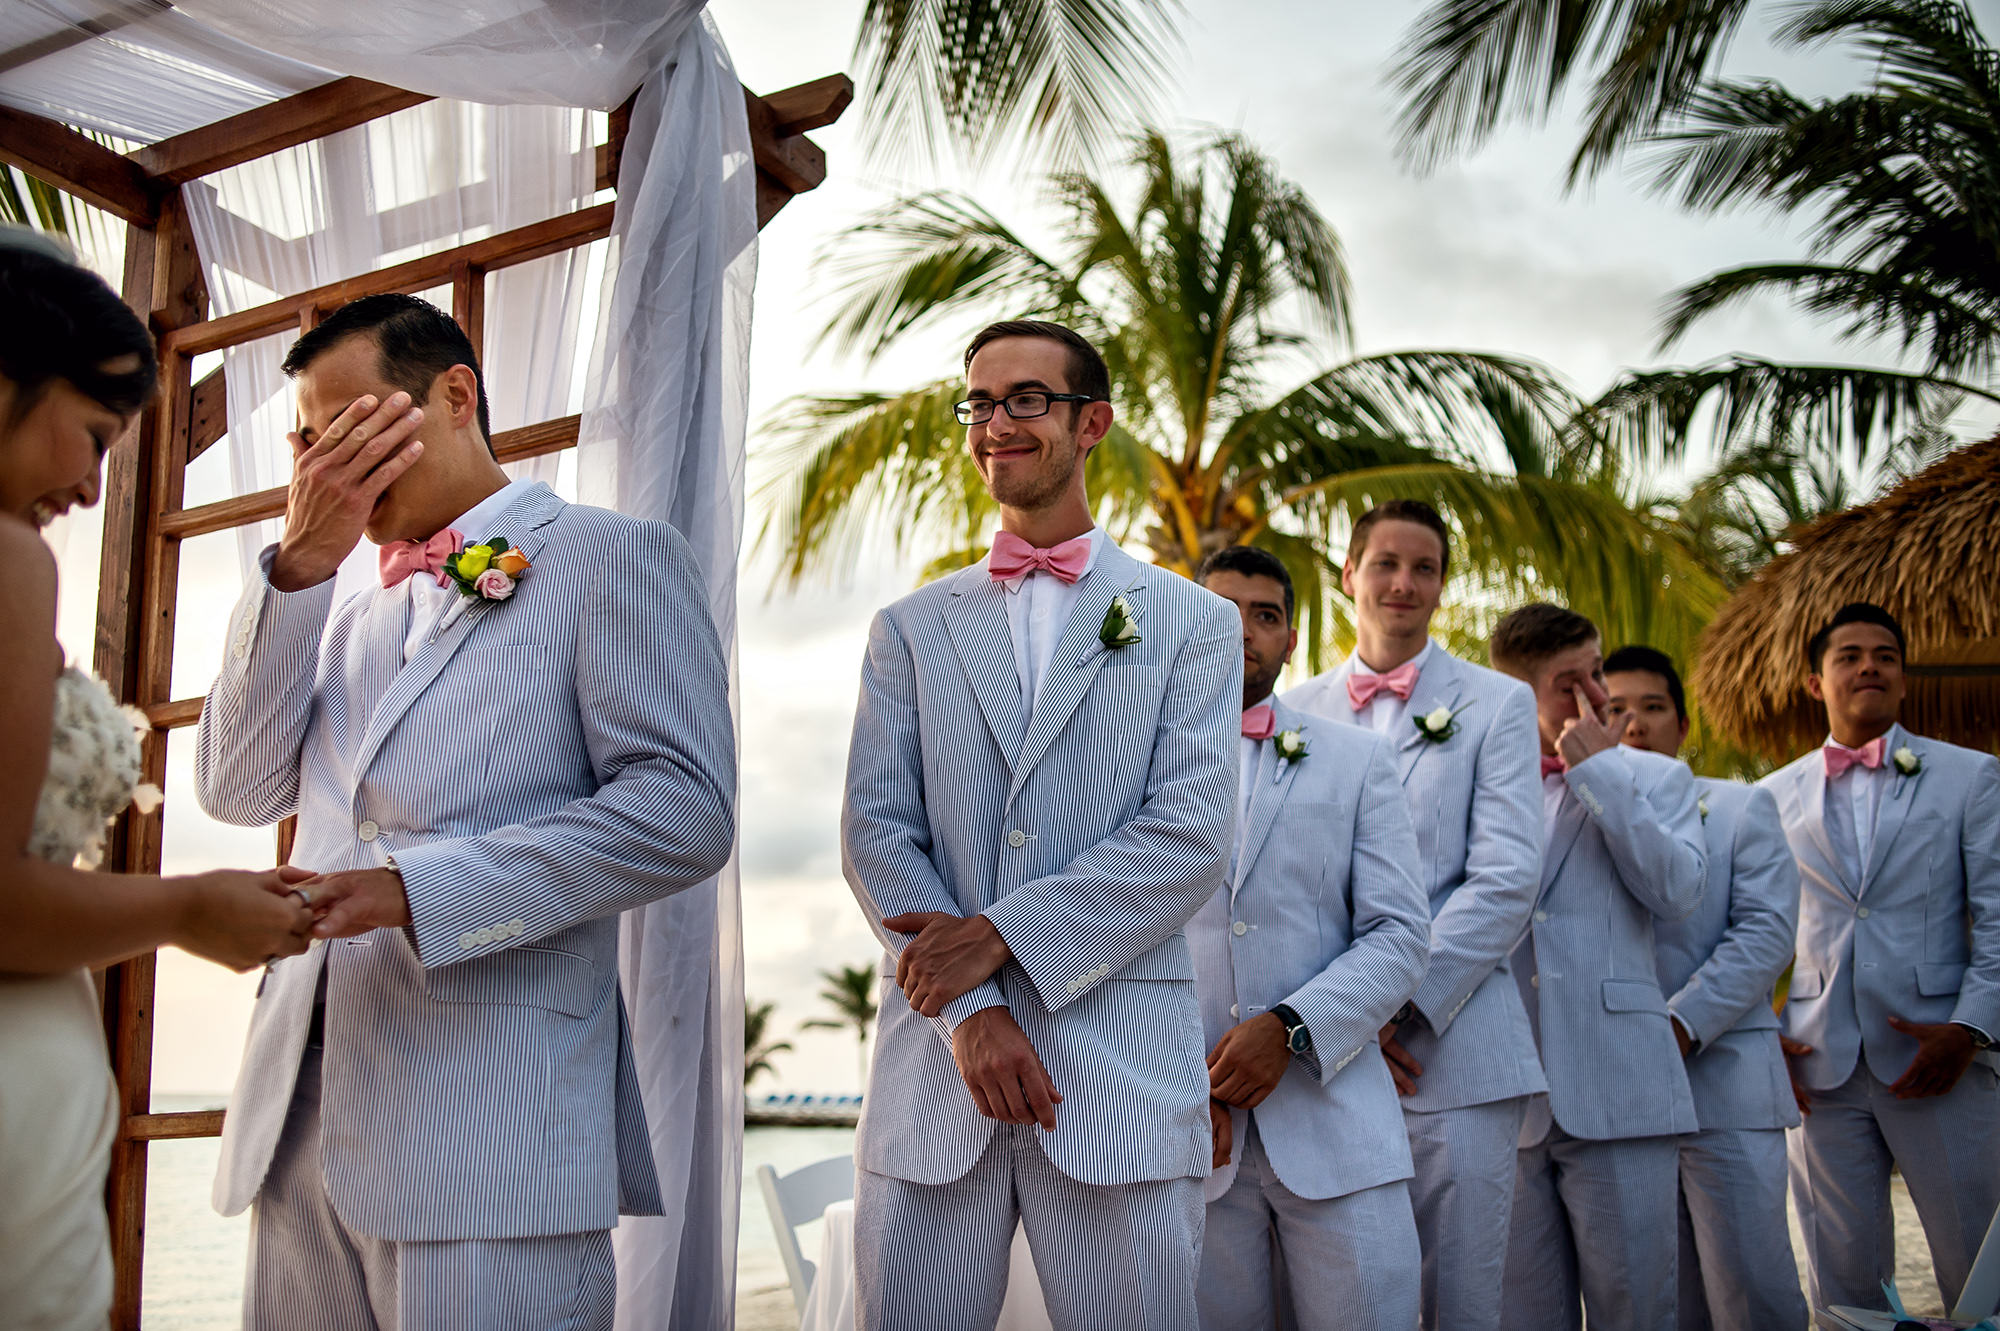 Tearful groom at ceremony with groomsmen- photo by Davina + Daniel